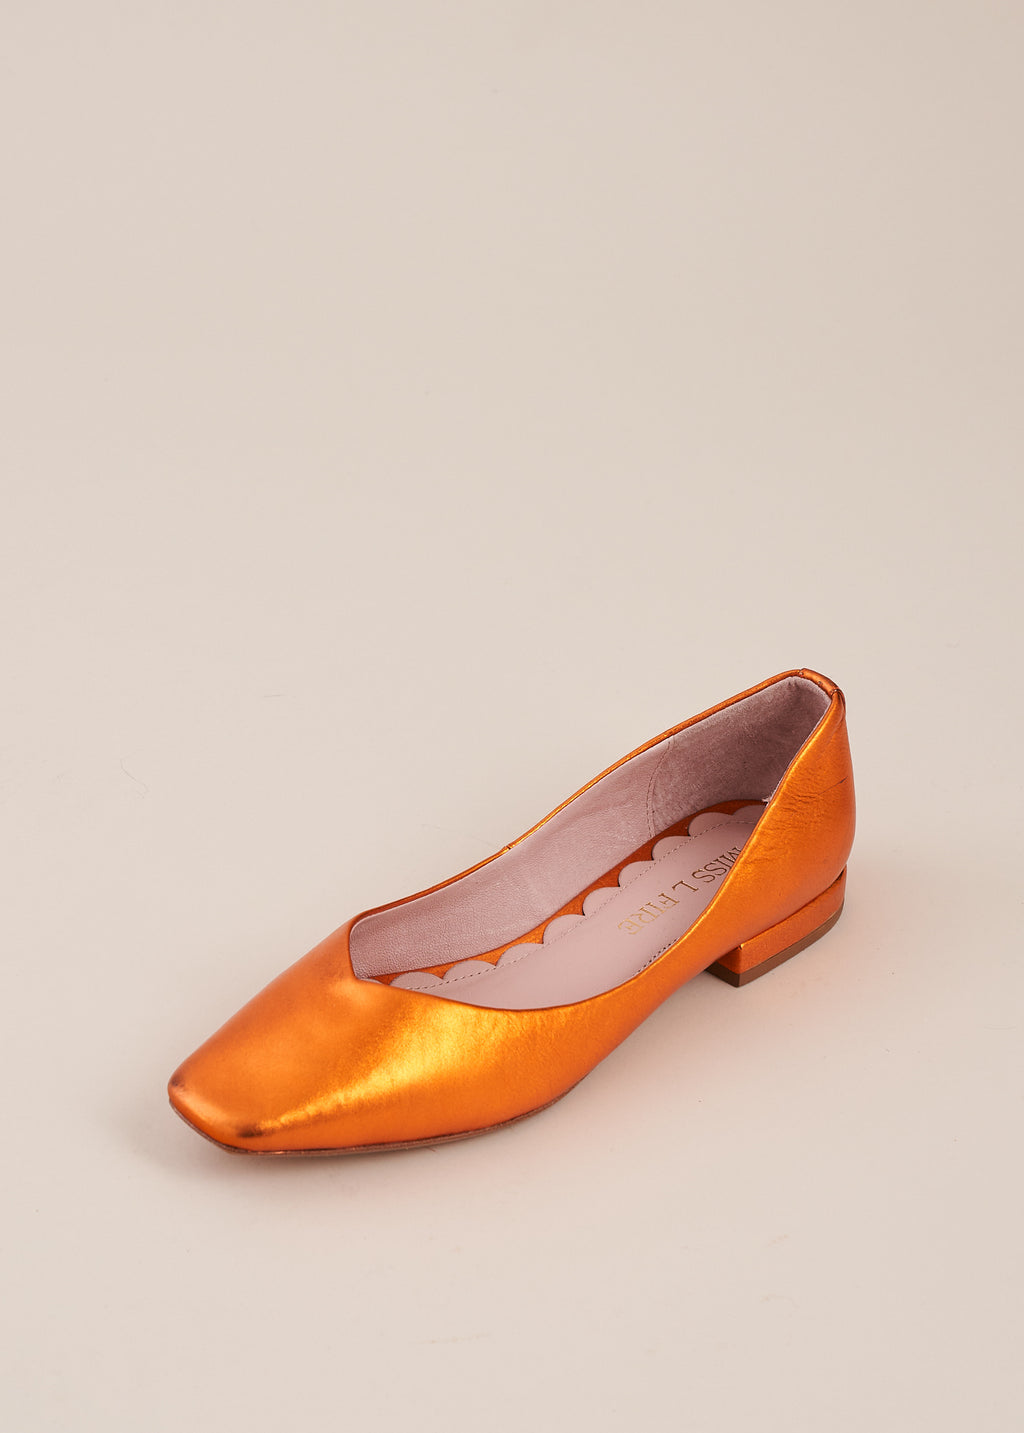 Polly in orange metallic leather is the perfect, pared down, elegant  ballet flat that you will want to wear every day. Ethically made by Miss L Fire.